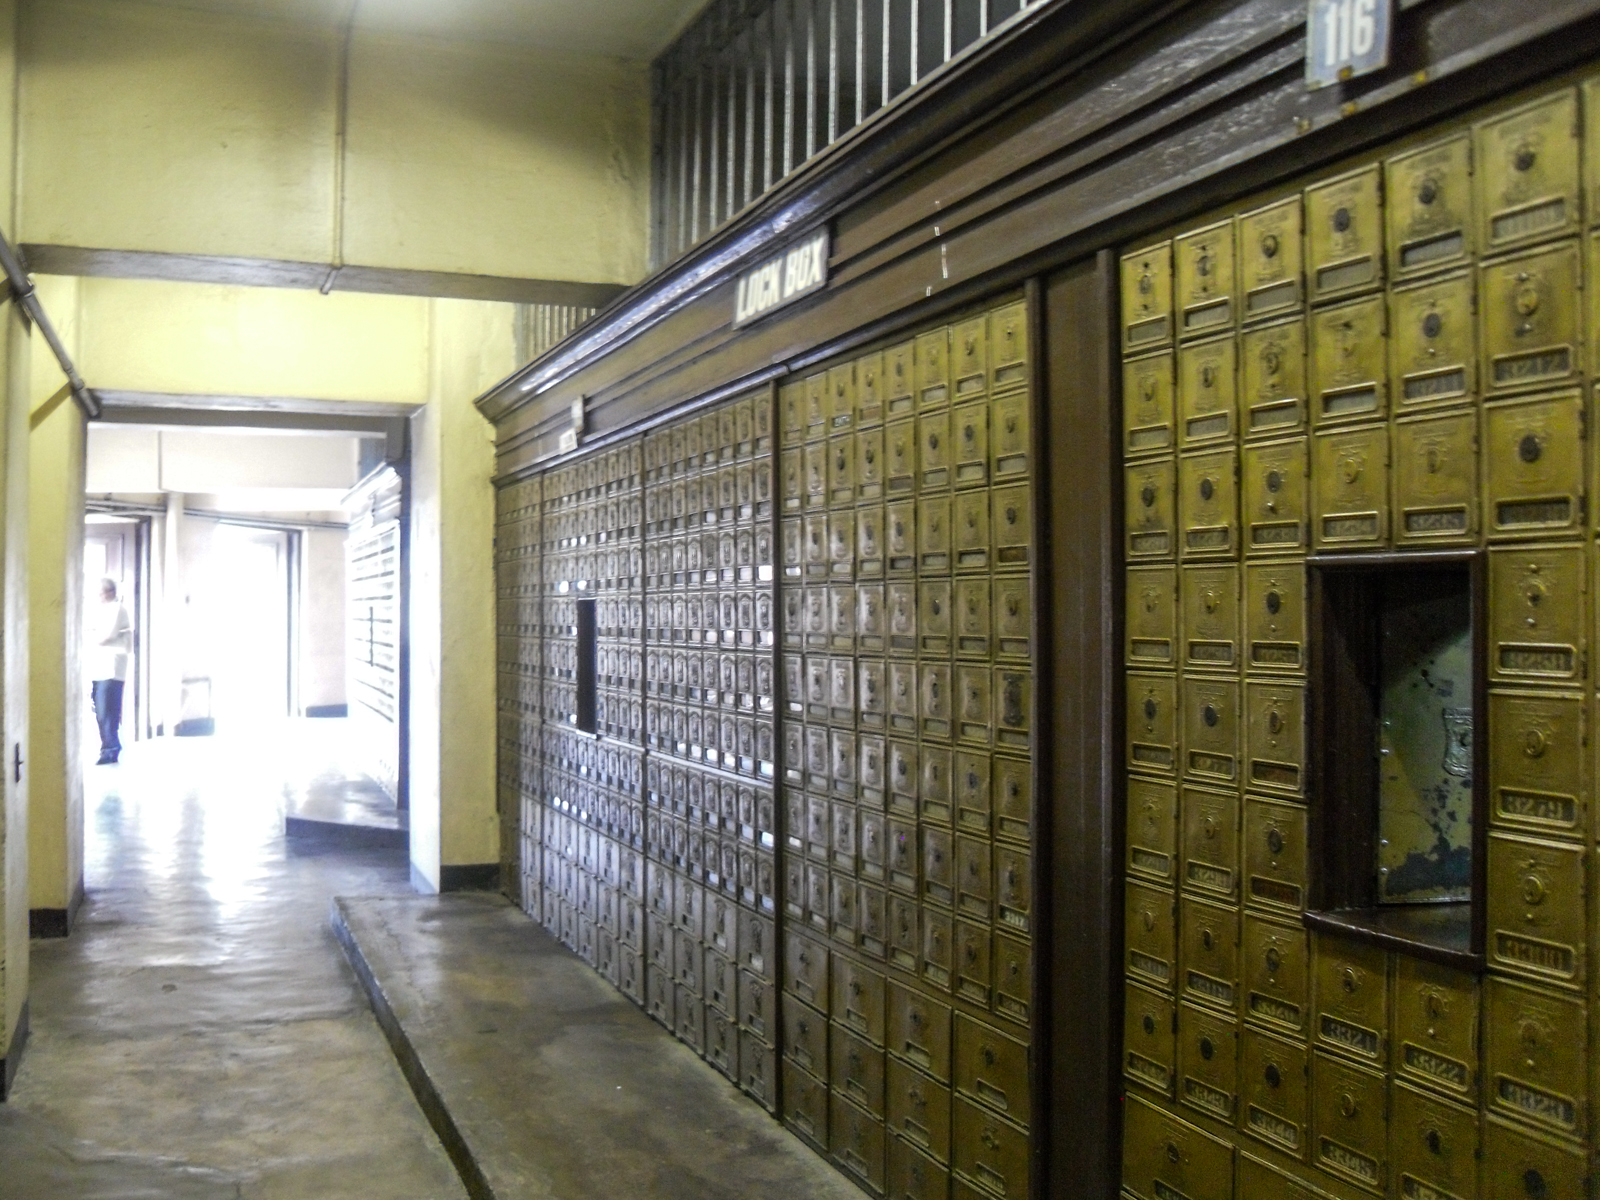 File:Manila Post Office Mail Cabinet